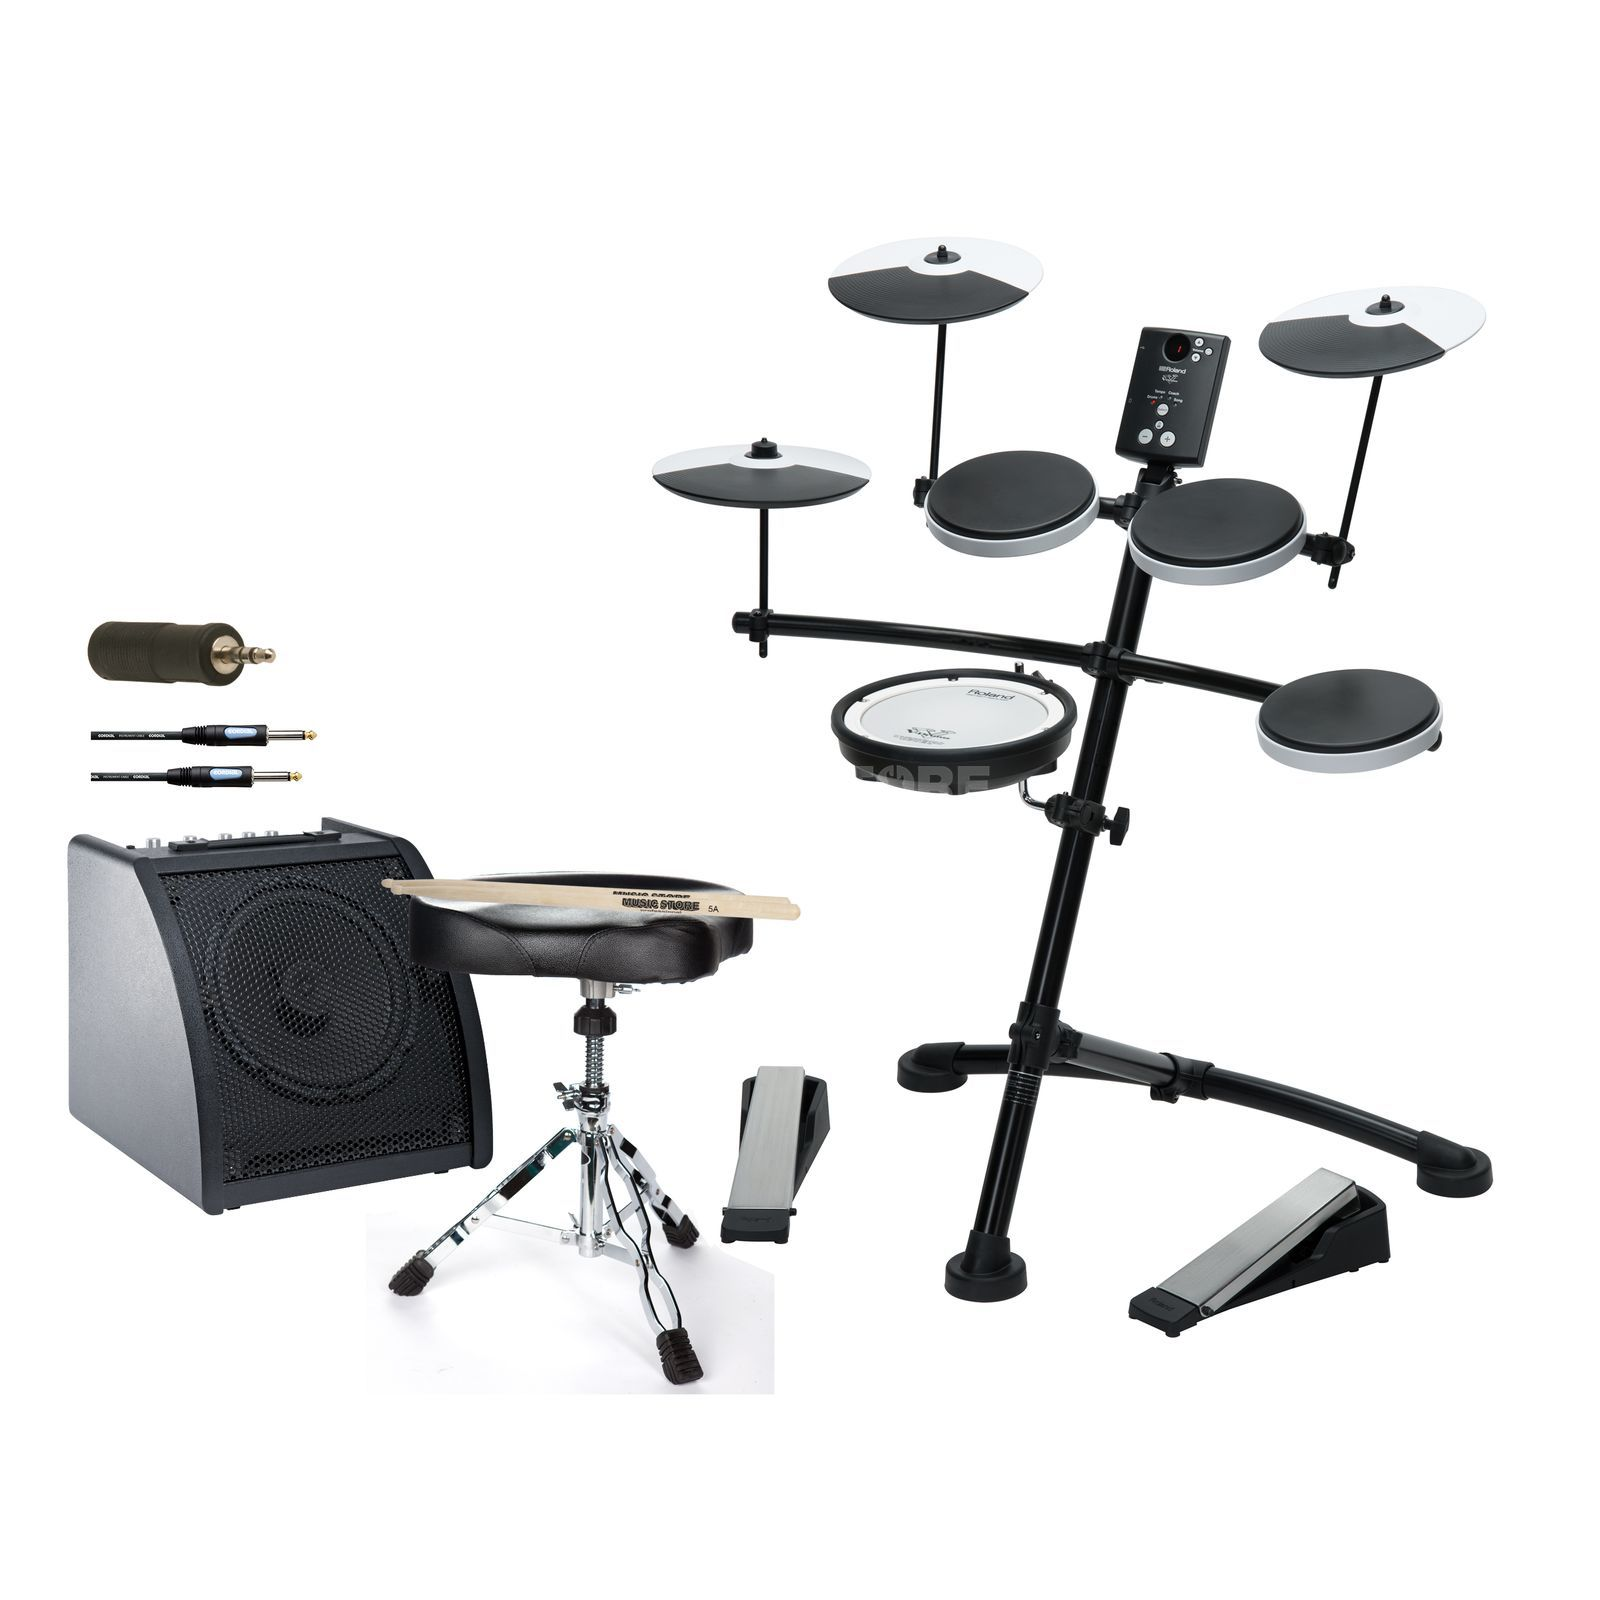 SET ROLAND TD-1KV Bundle II inkl. Monitor, Hocker & Sticks Produktbild